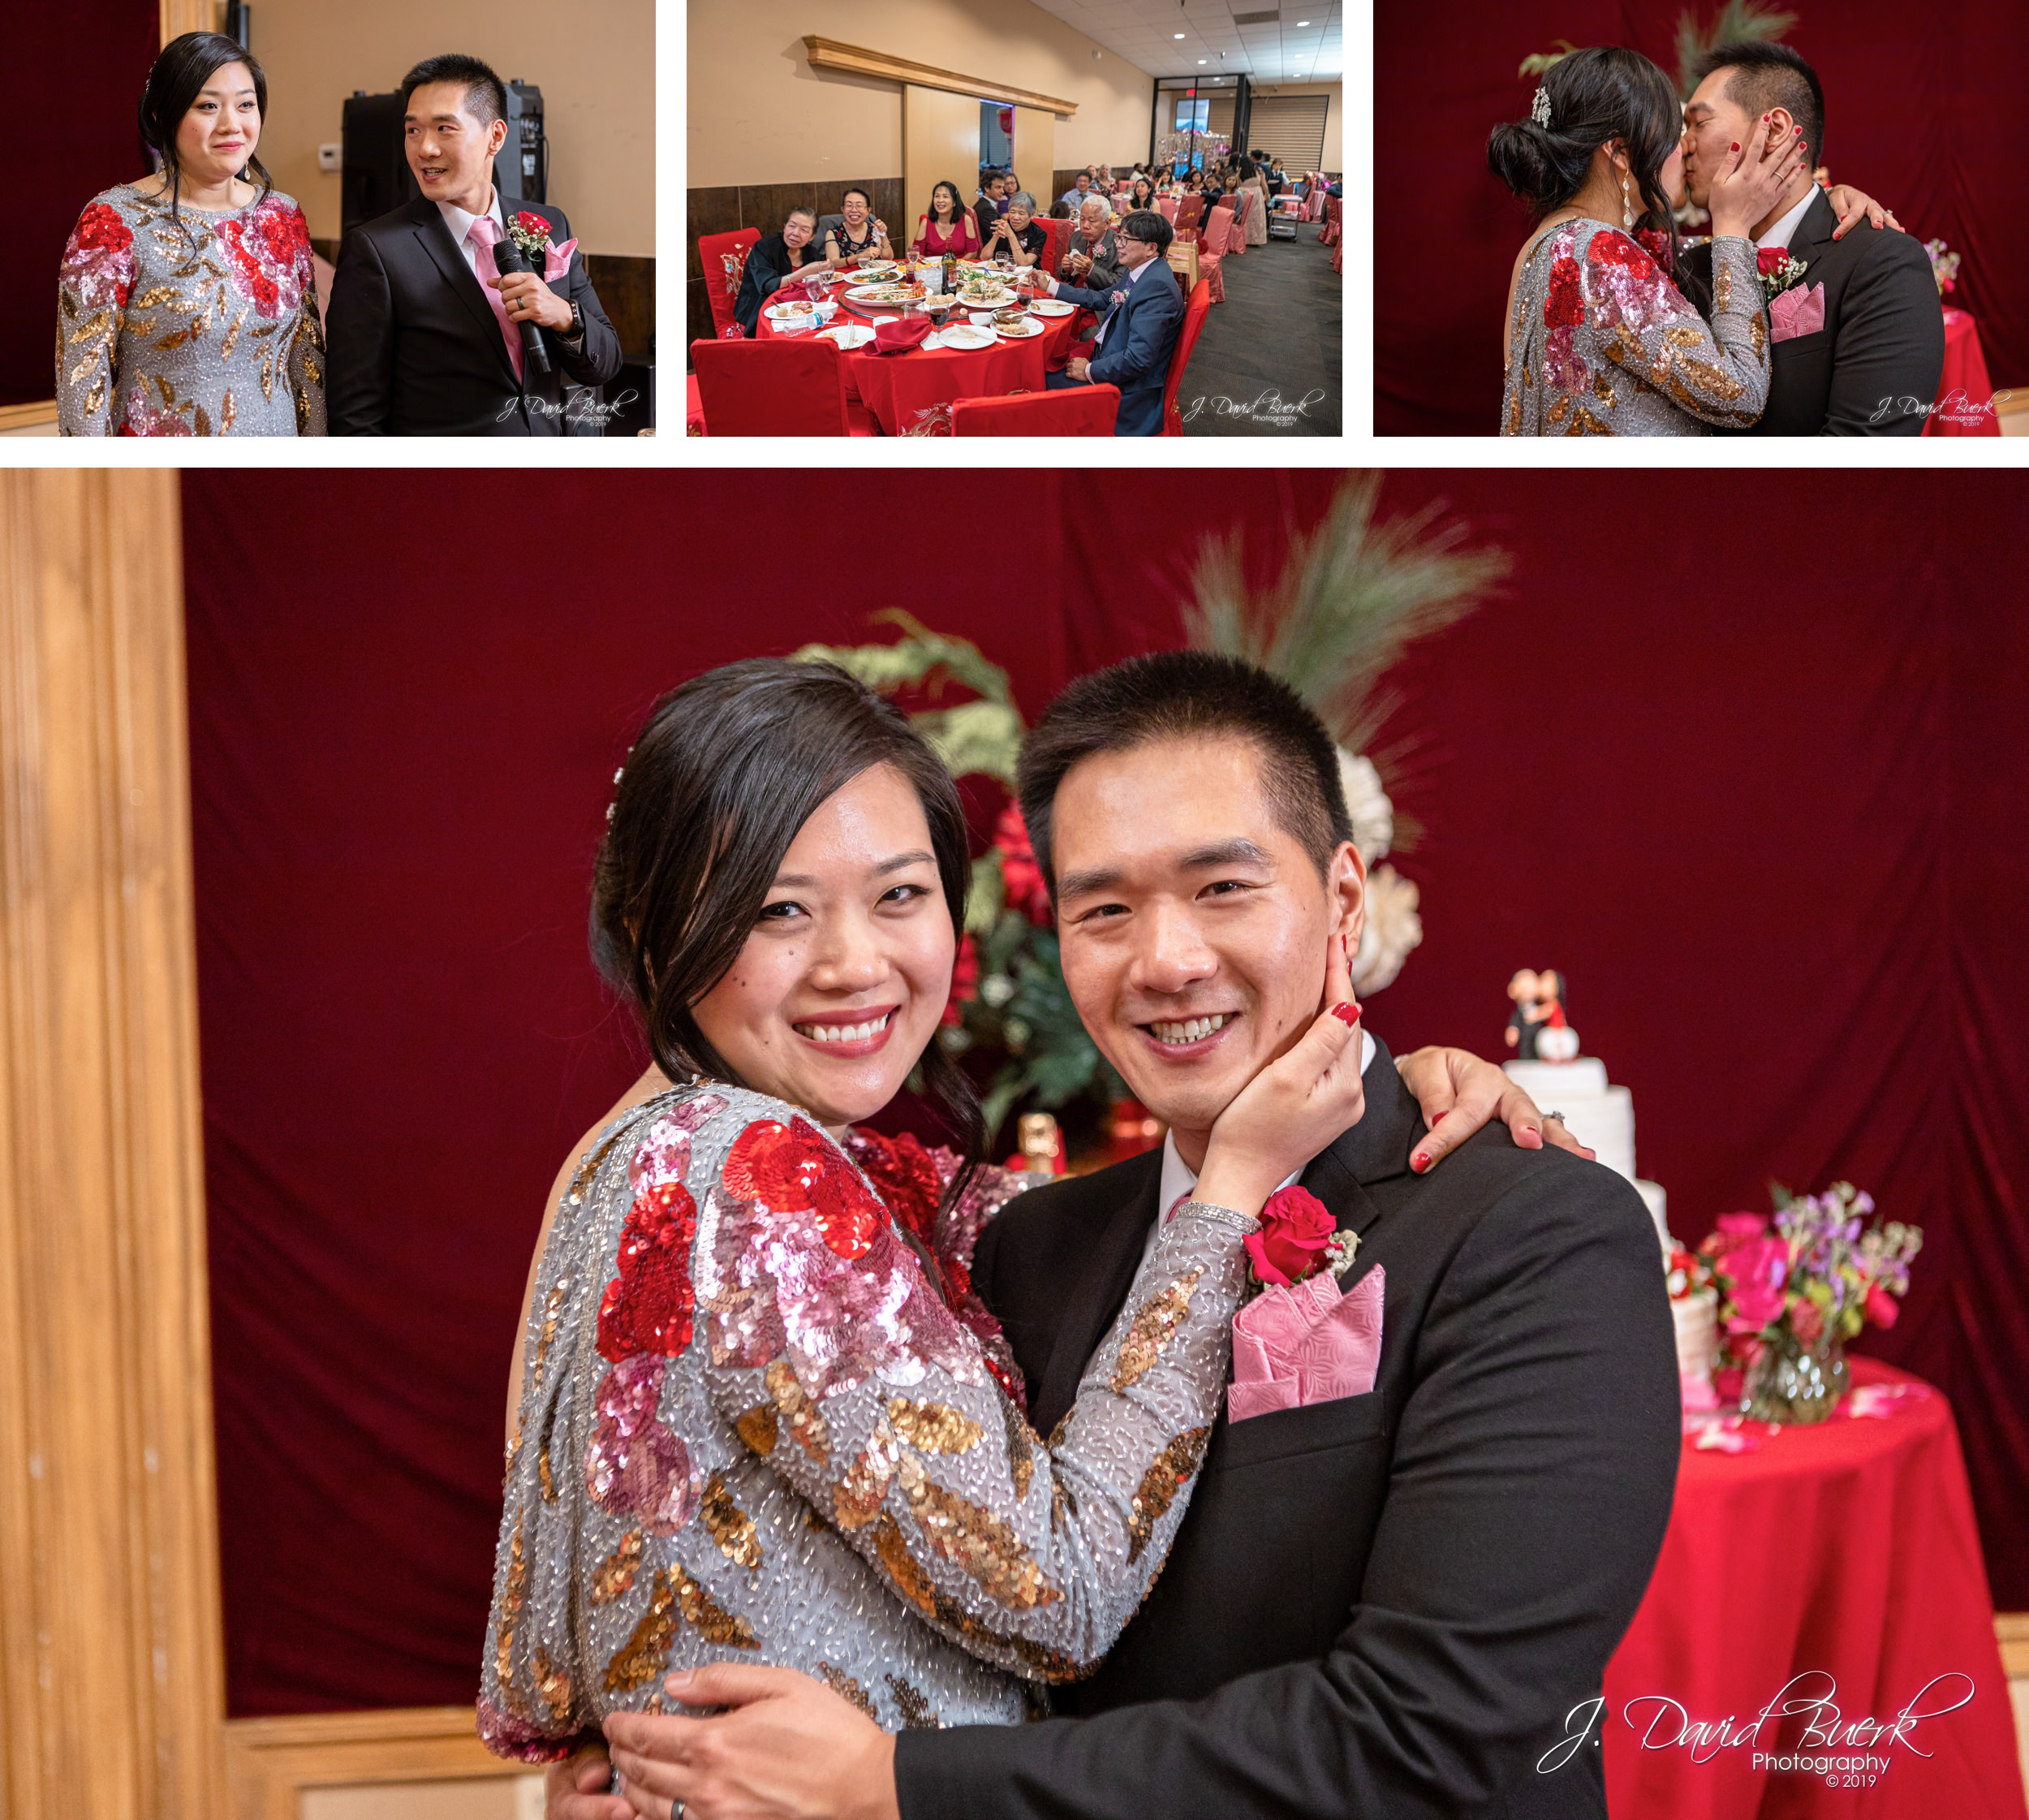 20190706 - David and Tiffany - Married 16.jpg